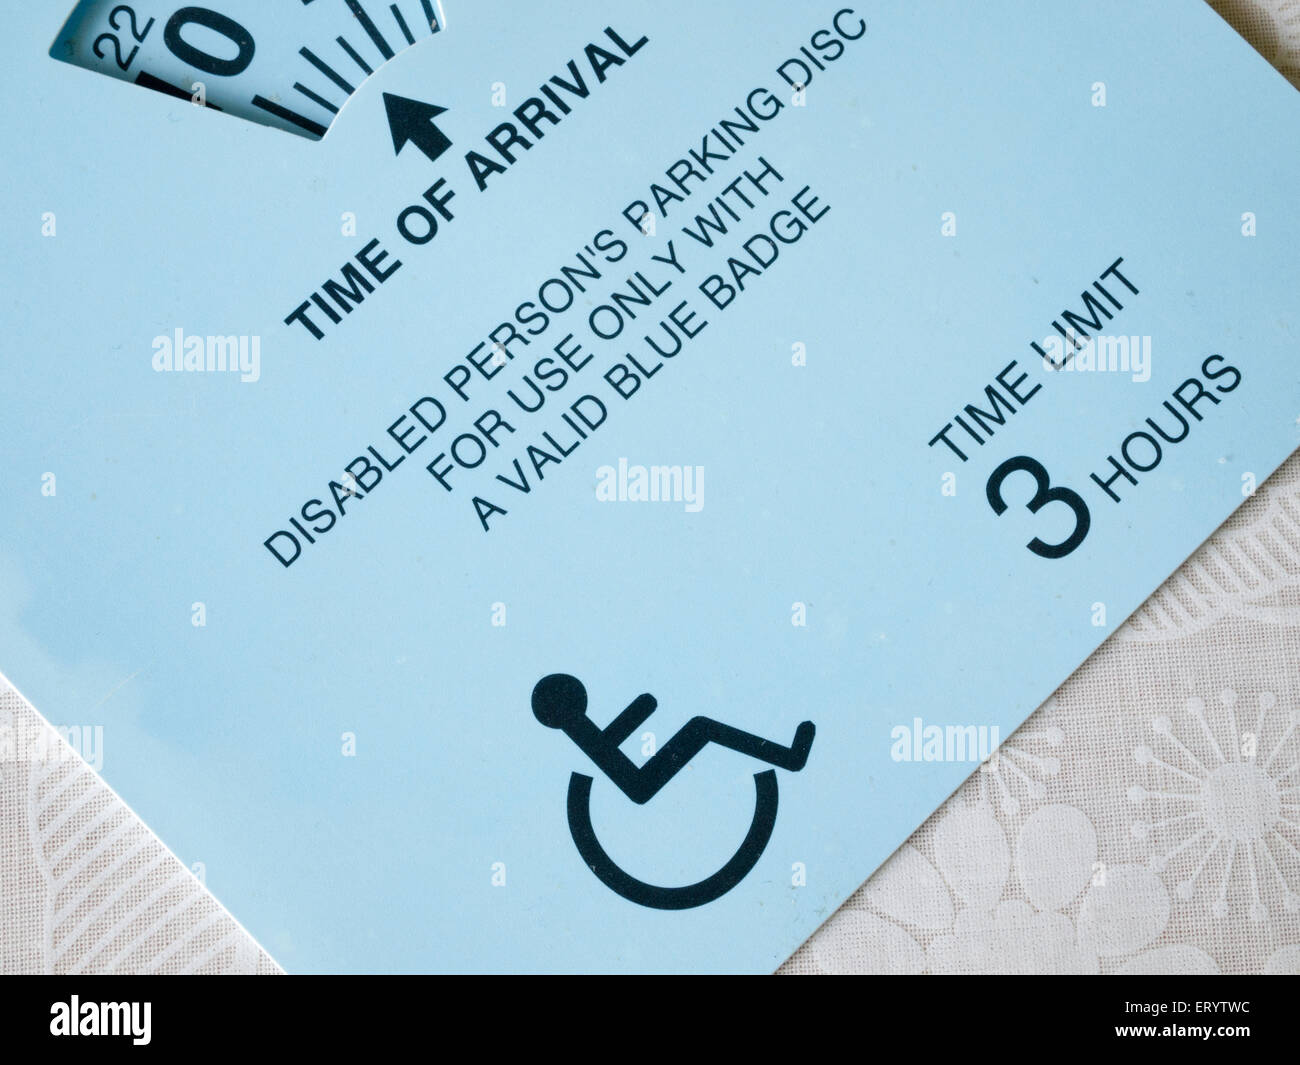 Disabled persons parking disc and permit (blue badge) - Stock Image